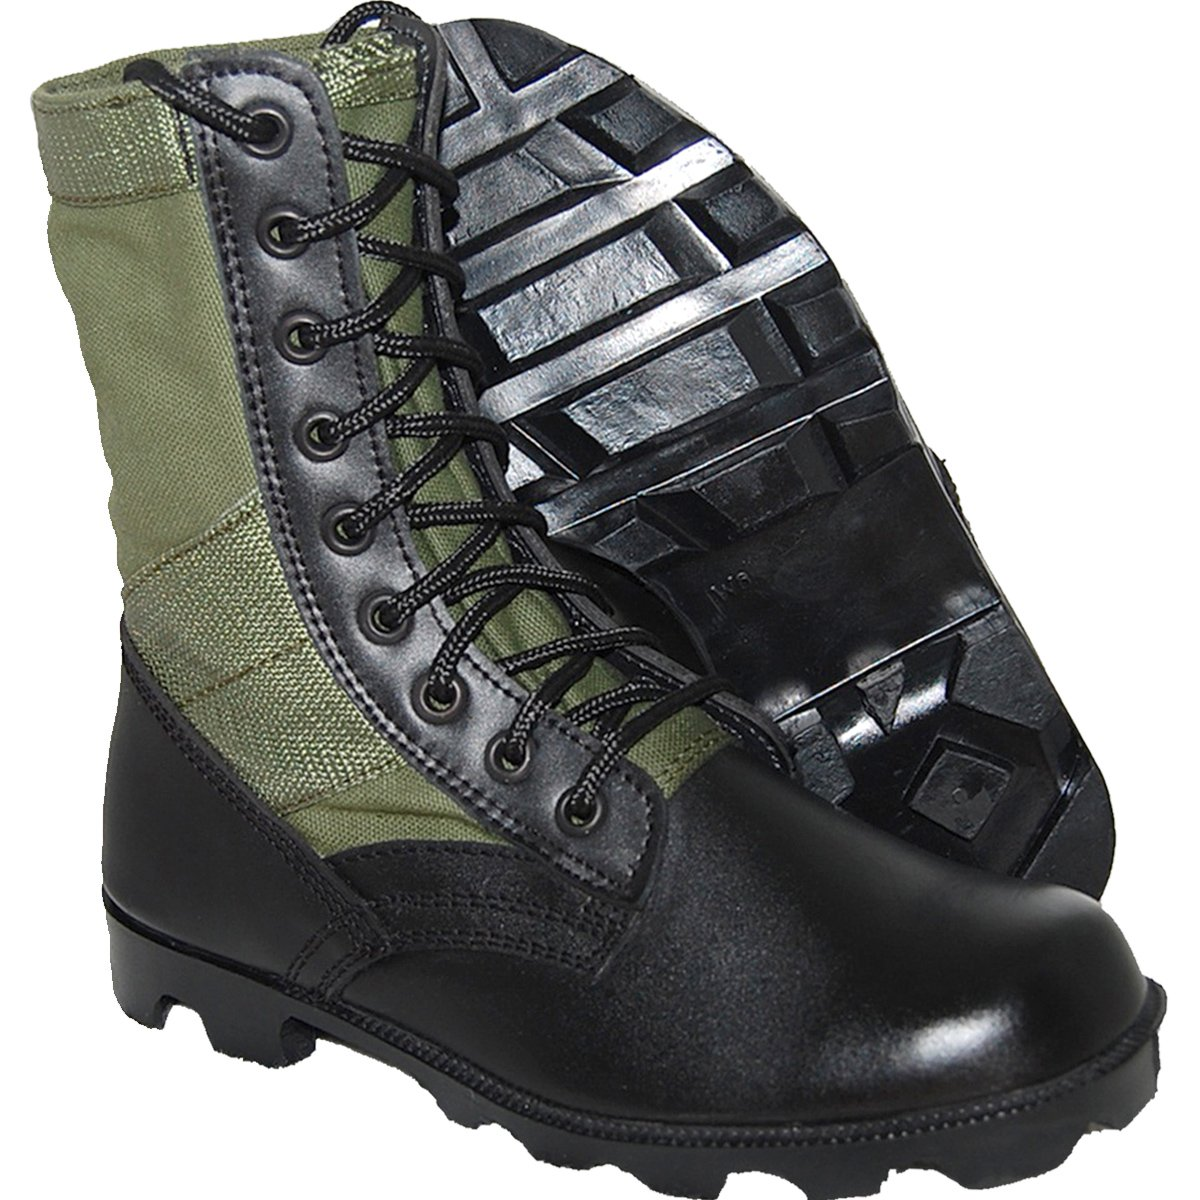 KRAZY SHOE ARTISTS Jungle Boot 8 Inch Leather Black Green Tactical Men's Combat Size 10 by KRAZY SHOE ARTISTS